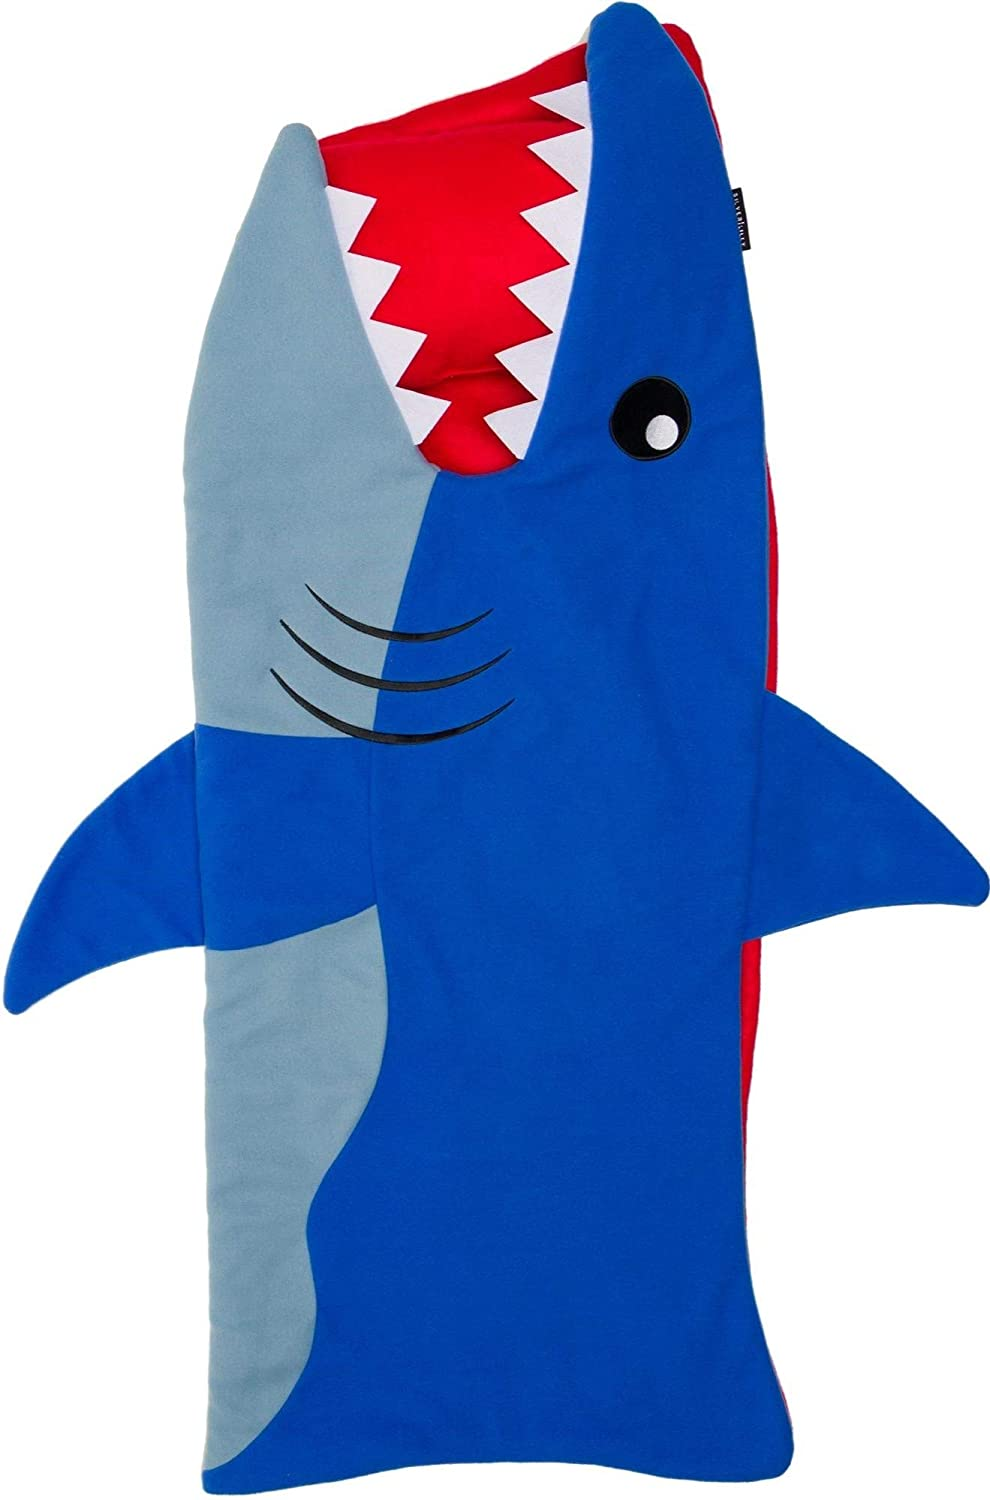 Shark Toddler Nap Mat - 50 in. x 20 in. All-in-One Kids Animal Shaped Sleeping Bag with Attached Blanket and Pillow, Rollup Design, Perfect for Kindergarten, Daycare, Sleepovers by Silver Lilly